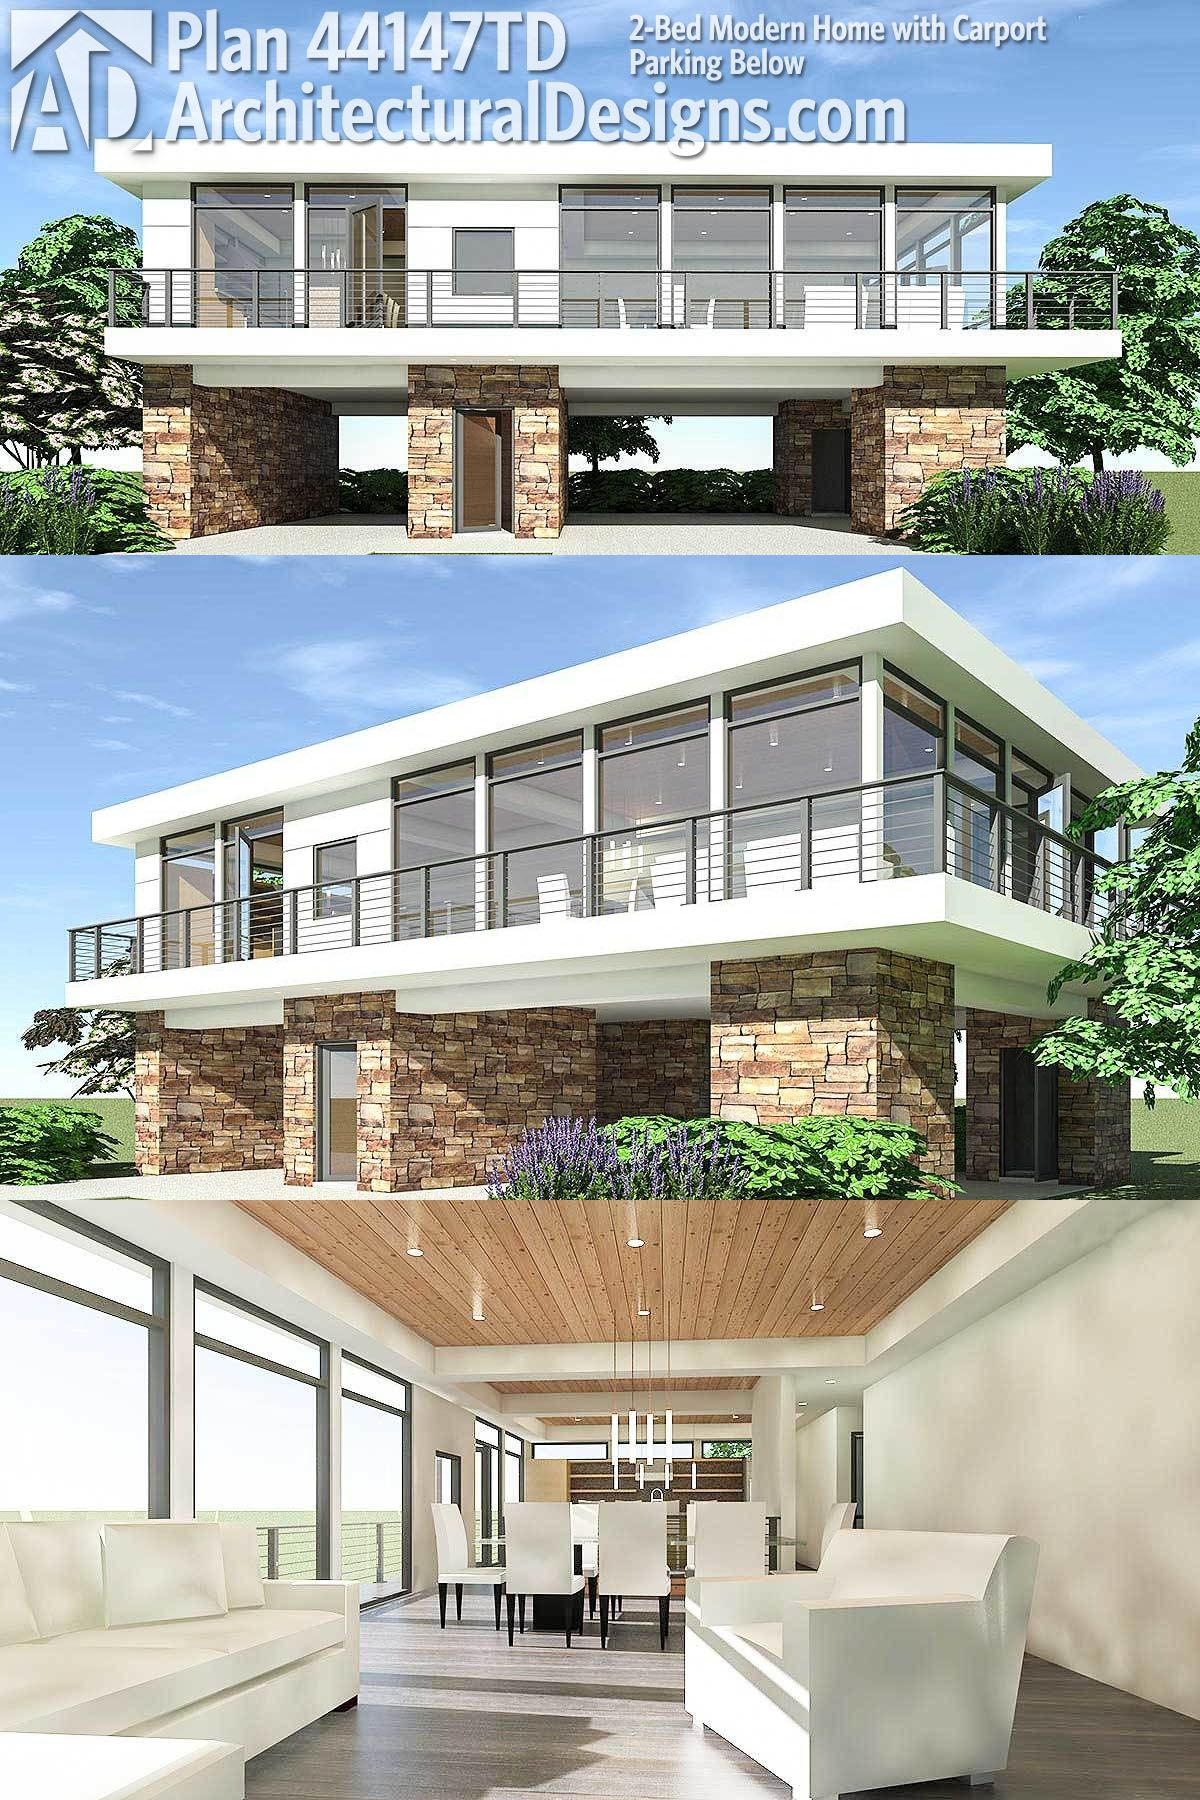 Plan 44147td 2 bed modern home with carport parking below